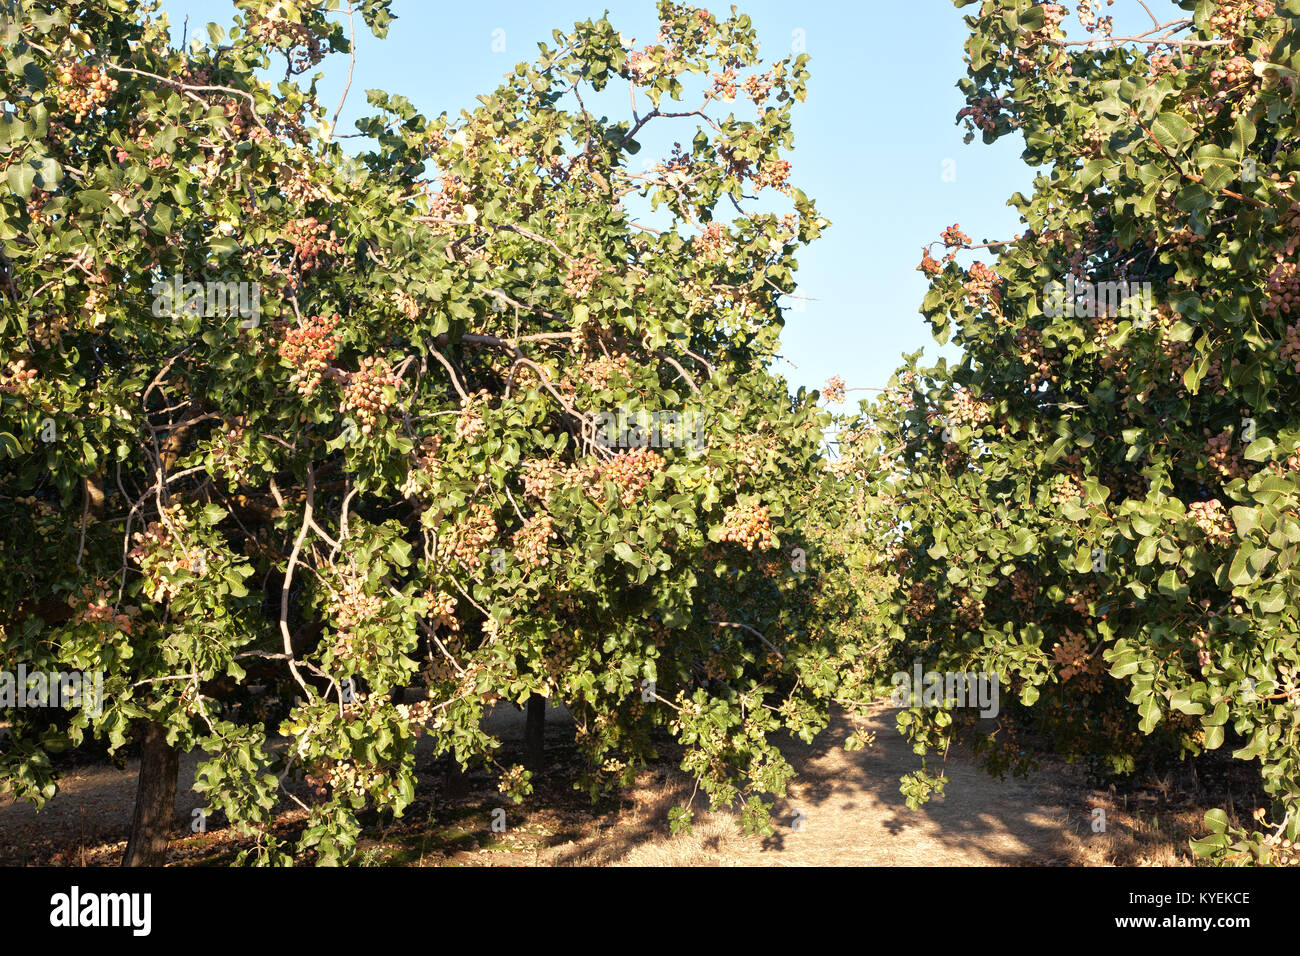 Rows of Pistachio trees, nuts maturing in orchard  'Pistacia vera'. - Stock Image